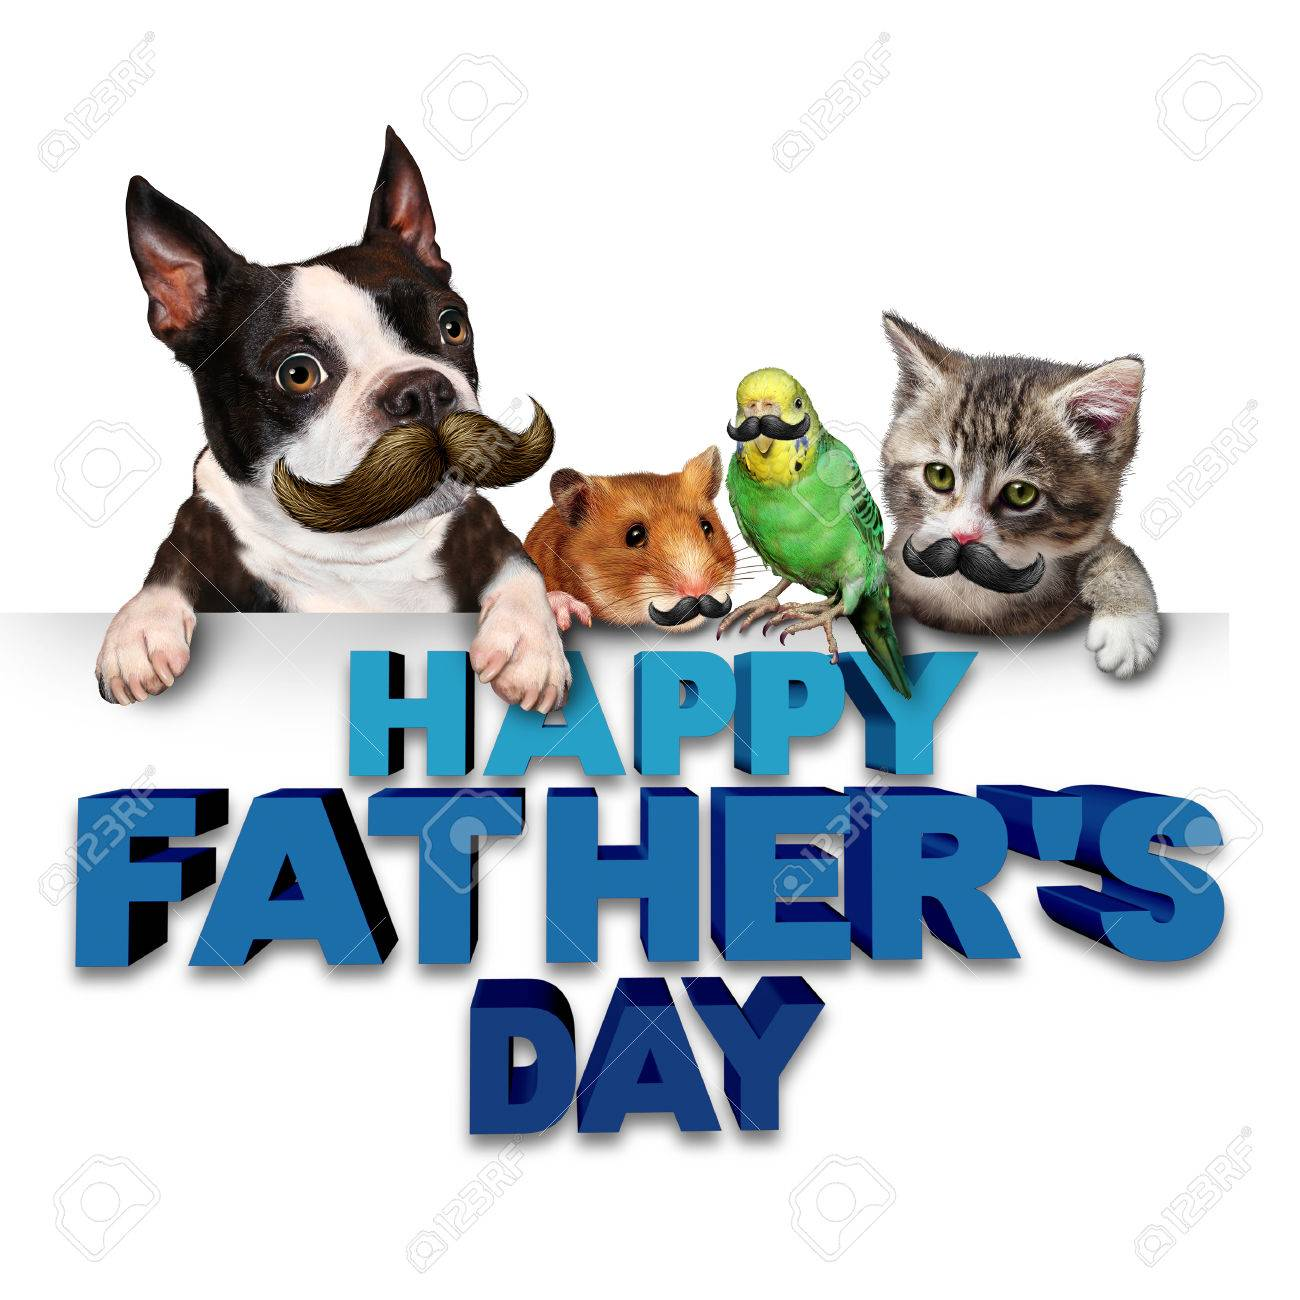 Fathers day greetings fun concept as a group of pets with mustaches fathers day greetings fun concept as a group of pets with mustaches or moustache symbols as biocorpaavc Images